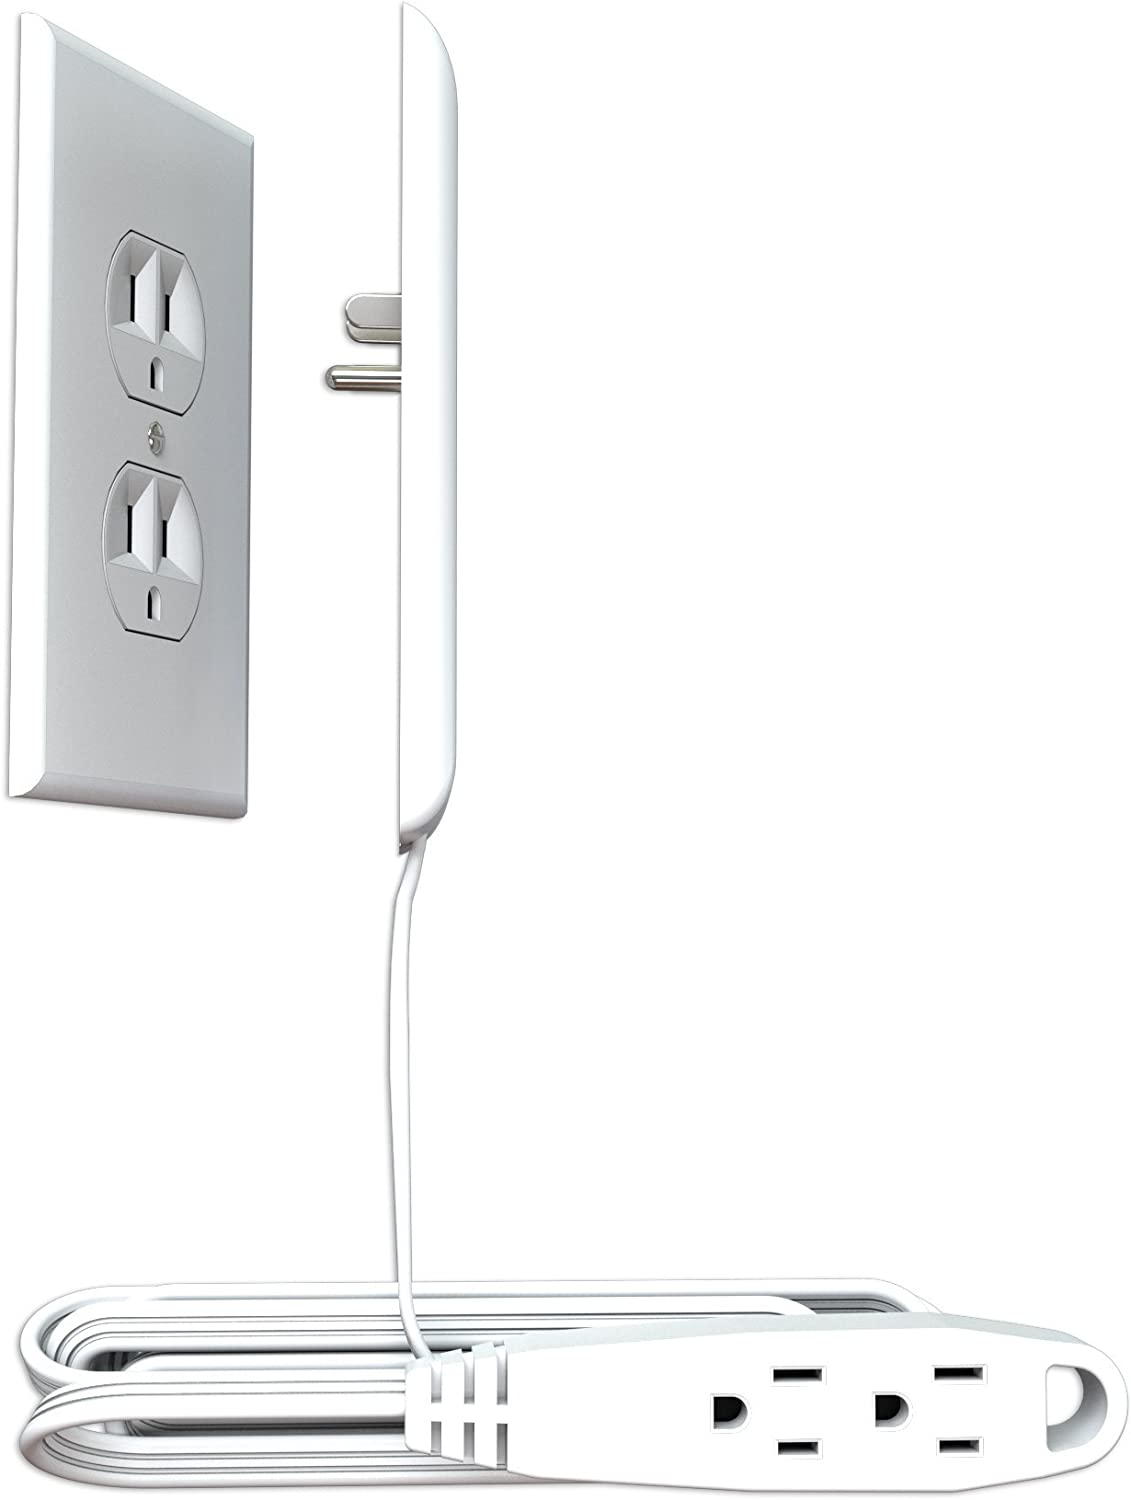 Sleek Socket Ultra-Thin Electrical Outlet Cover | Hides Ugly & Unsafe Plugs & Cords | 9 ft. Oversized Outlet Cover with 3 Outlet Power Strip | UL/CSA Safety Certified